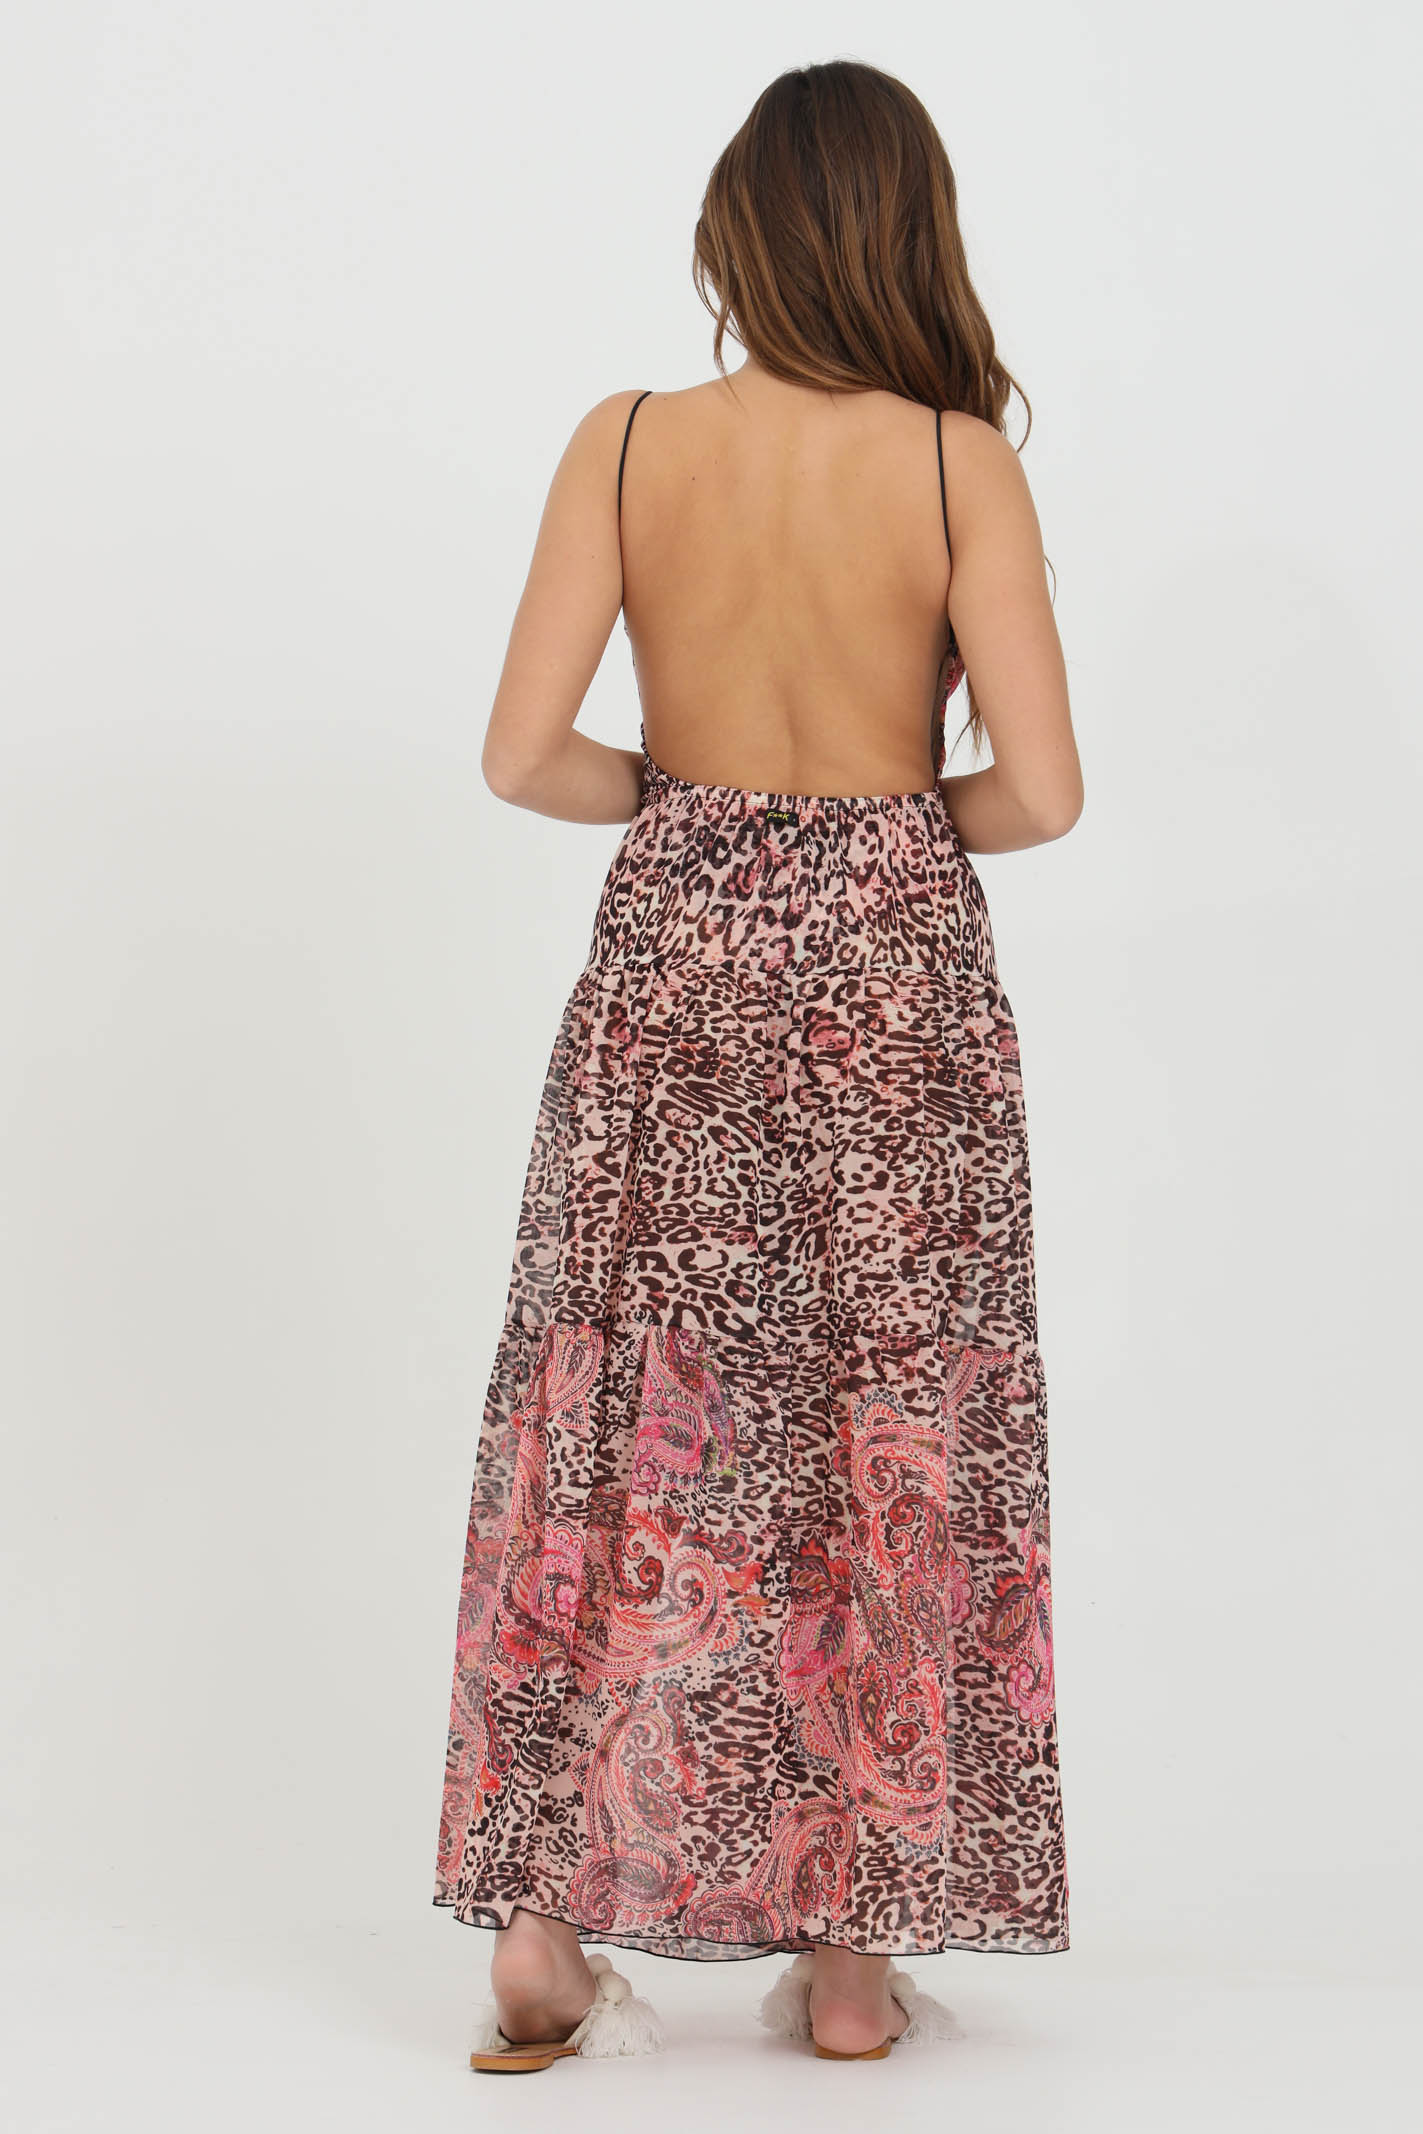 Skirt with animal print F**K | Outwater | F21-0586X1.